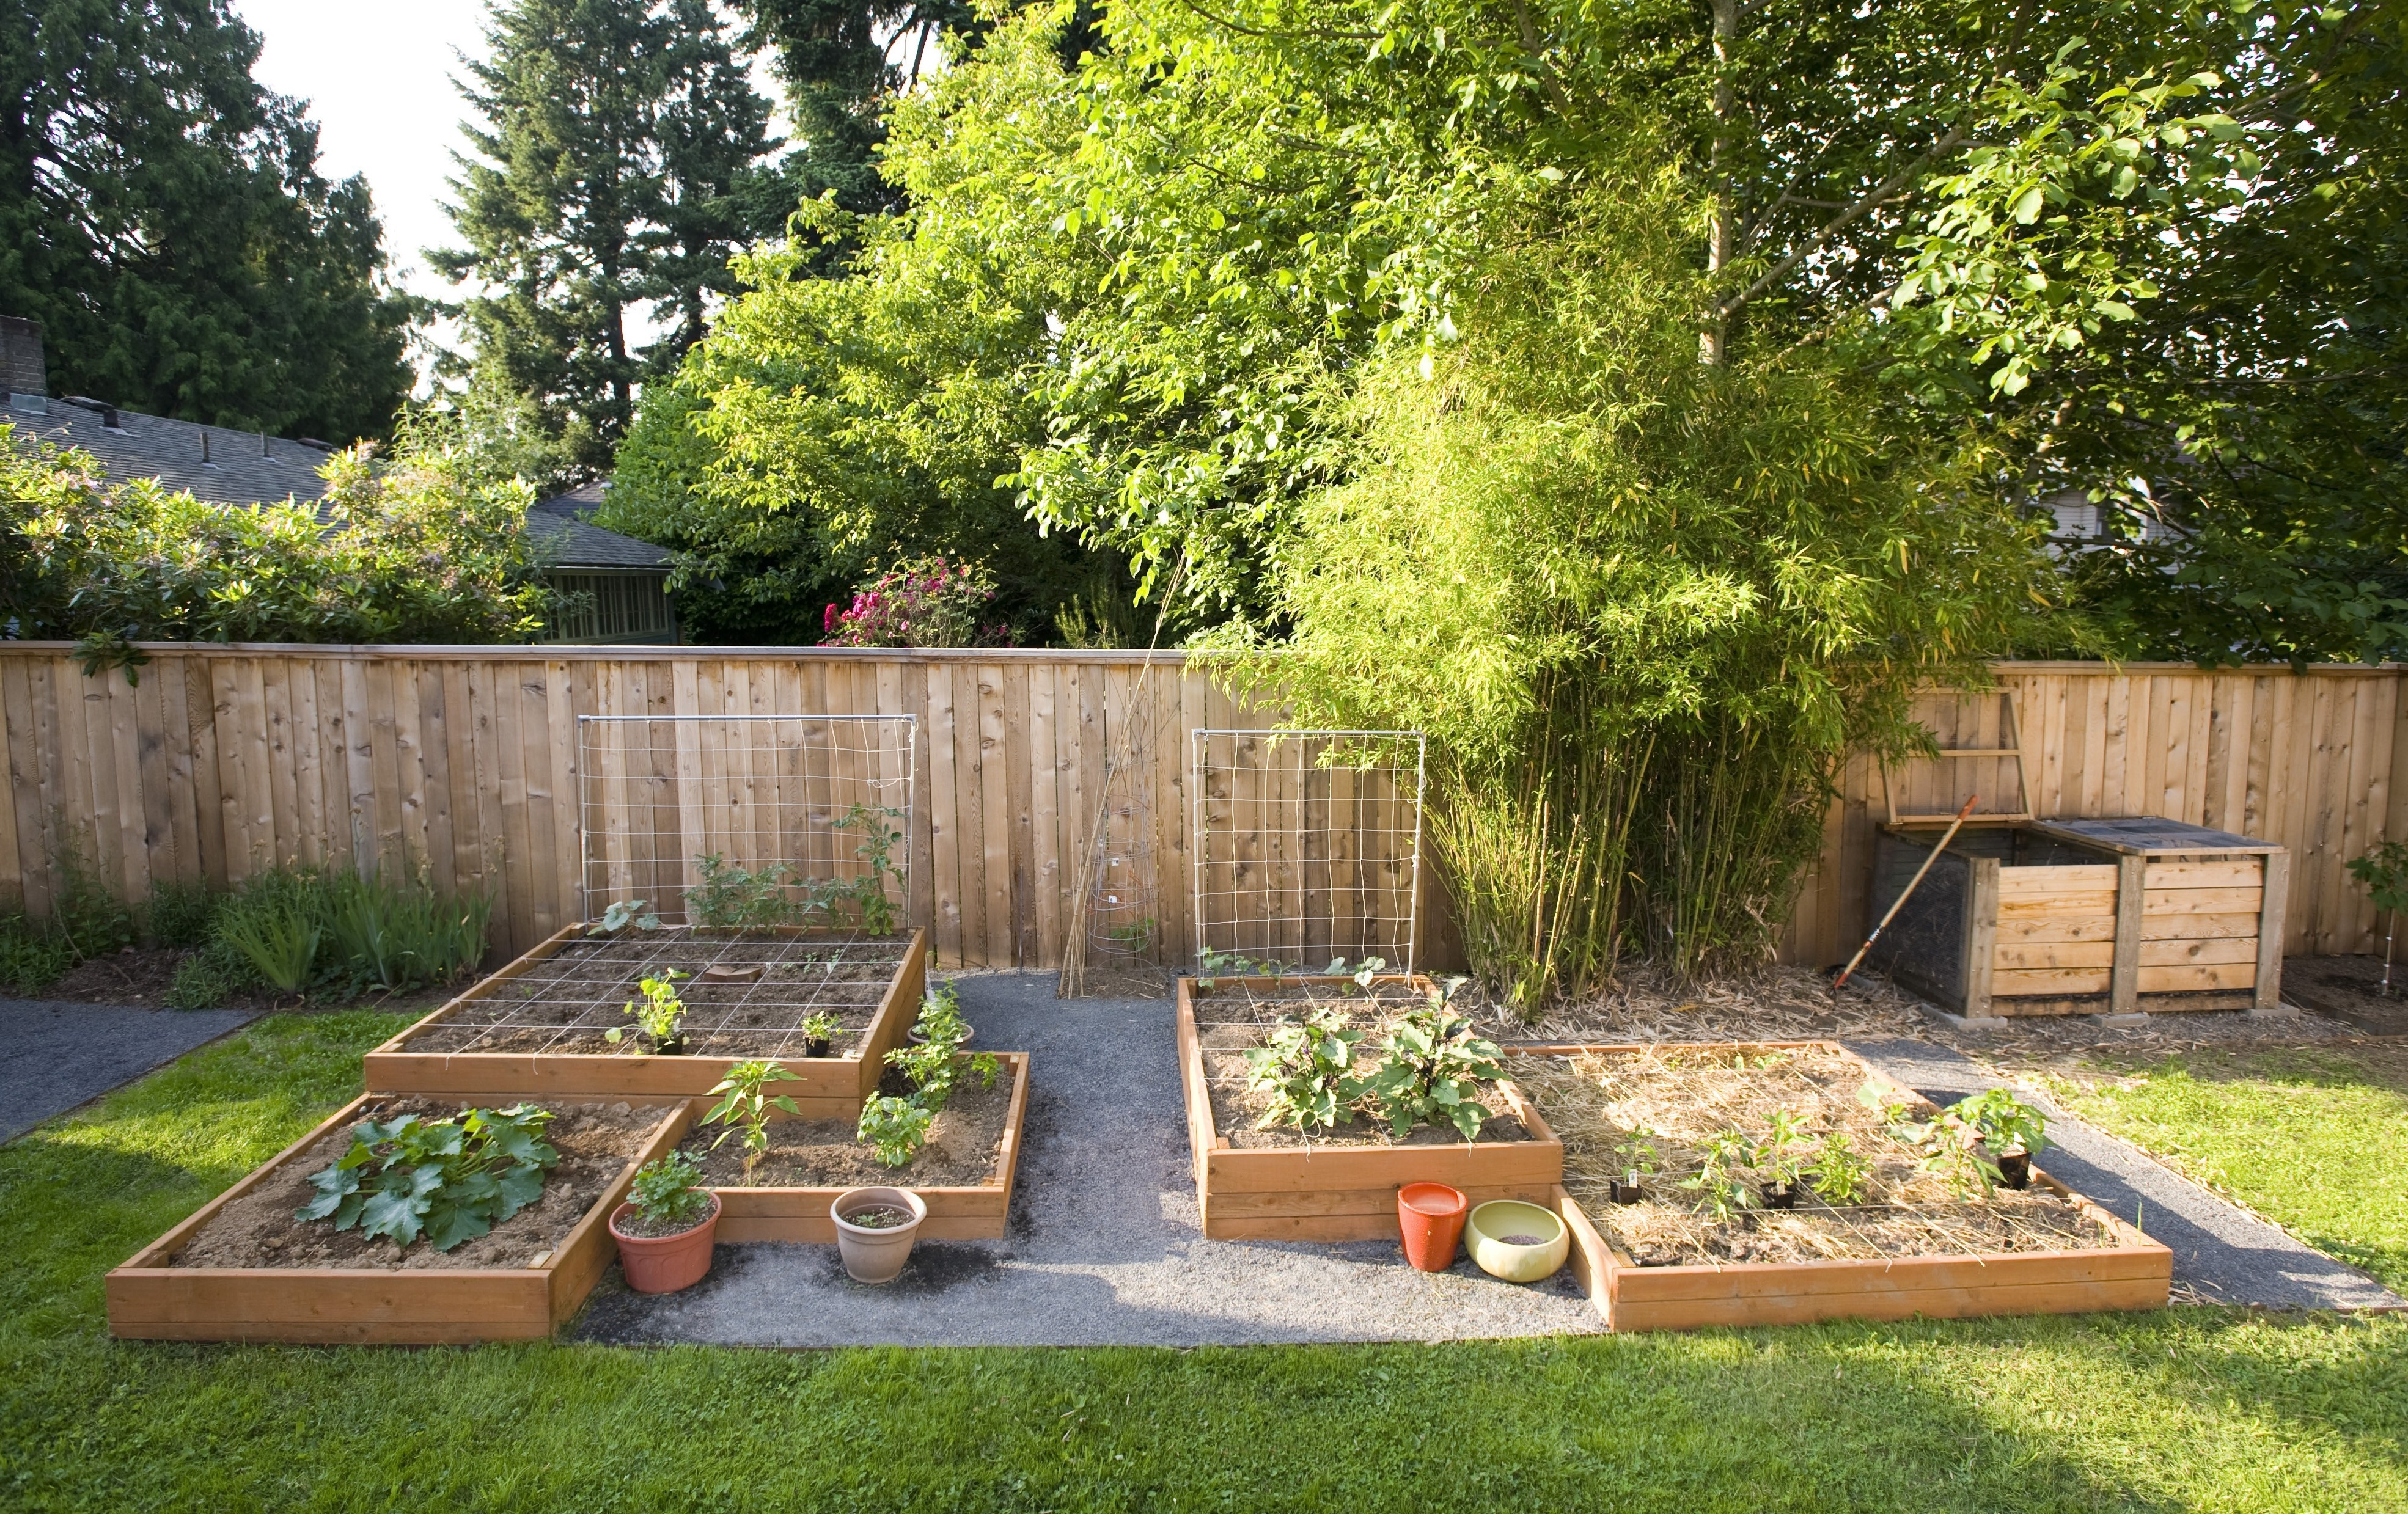 Small Square Foot Backyard Vegetable Garden Ideas With Wood Raised in Backyard Landscaping Ideas Vegetable Garden